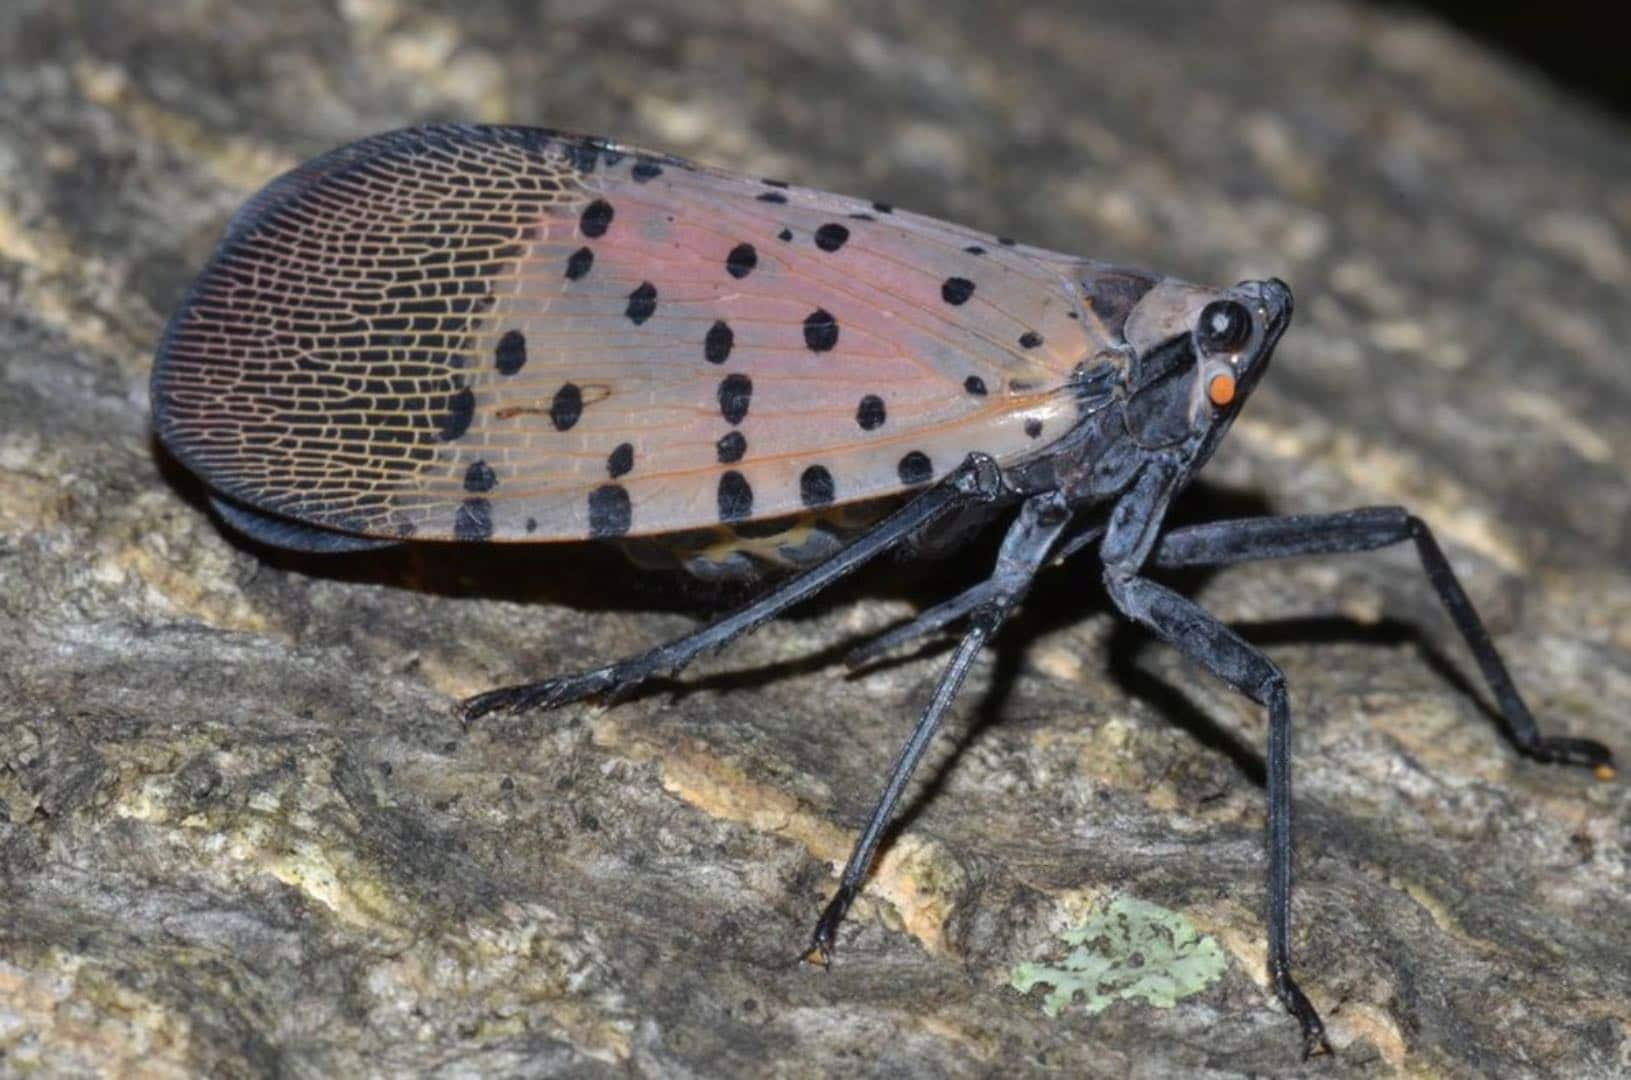 Invasive Insect and Plant Species in Massachusetts